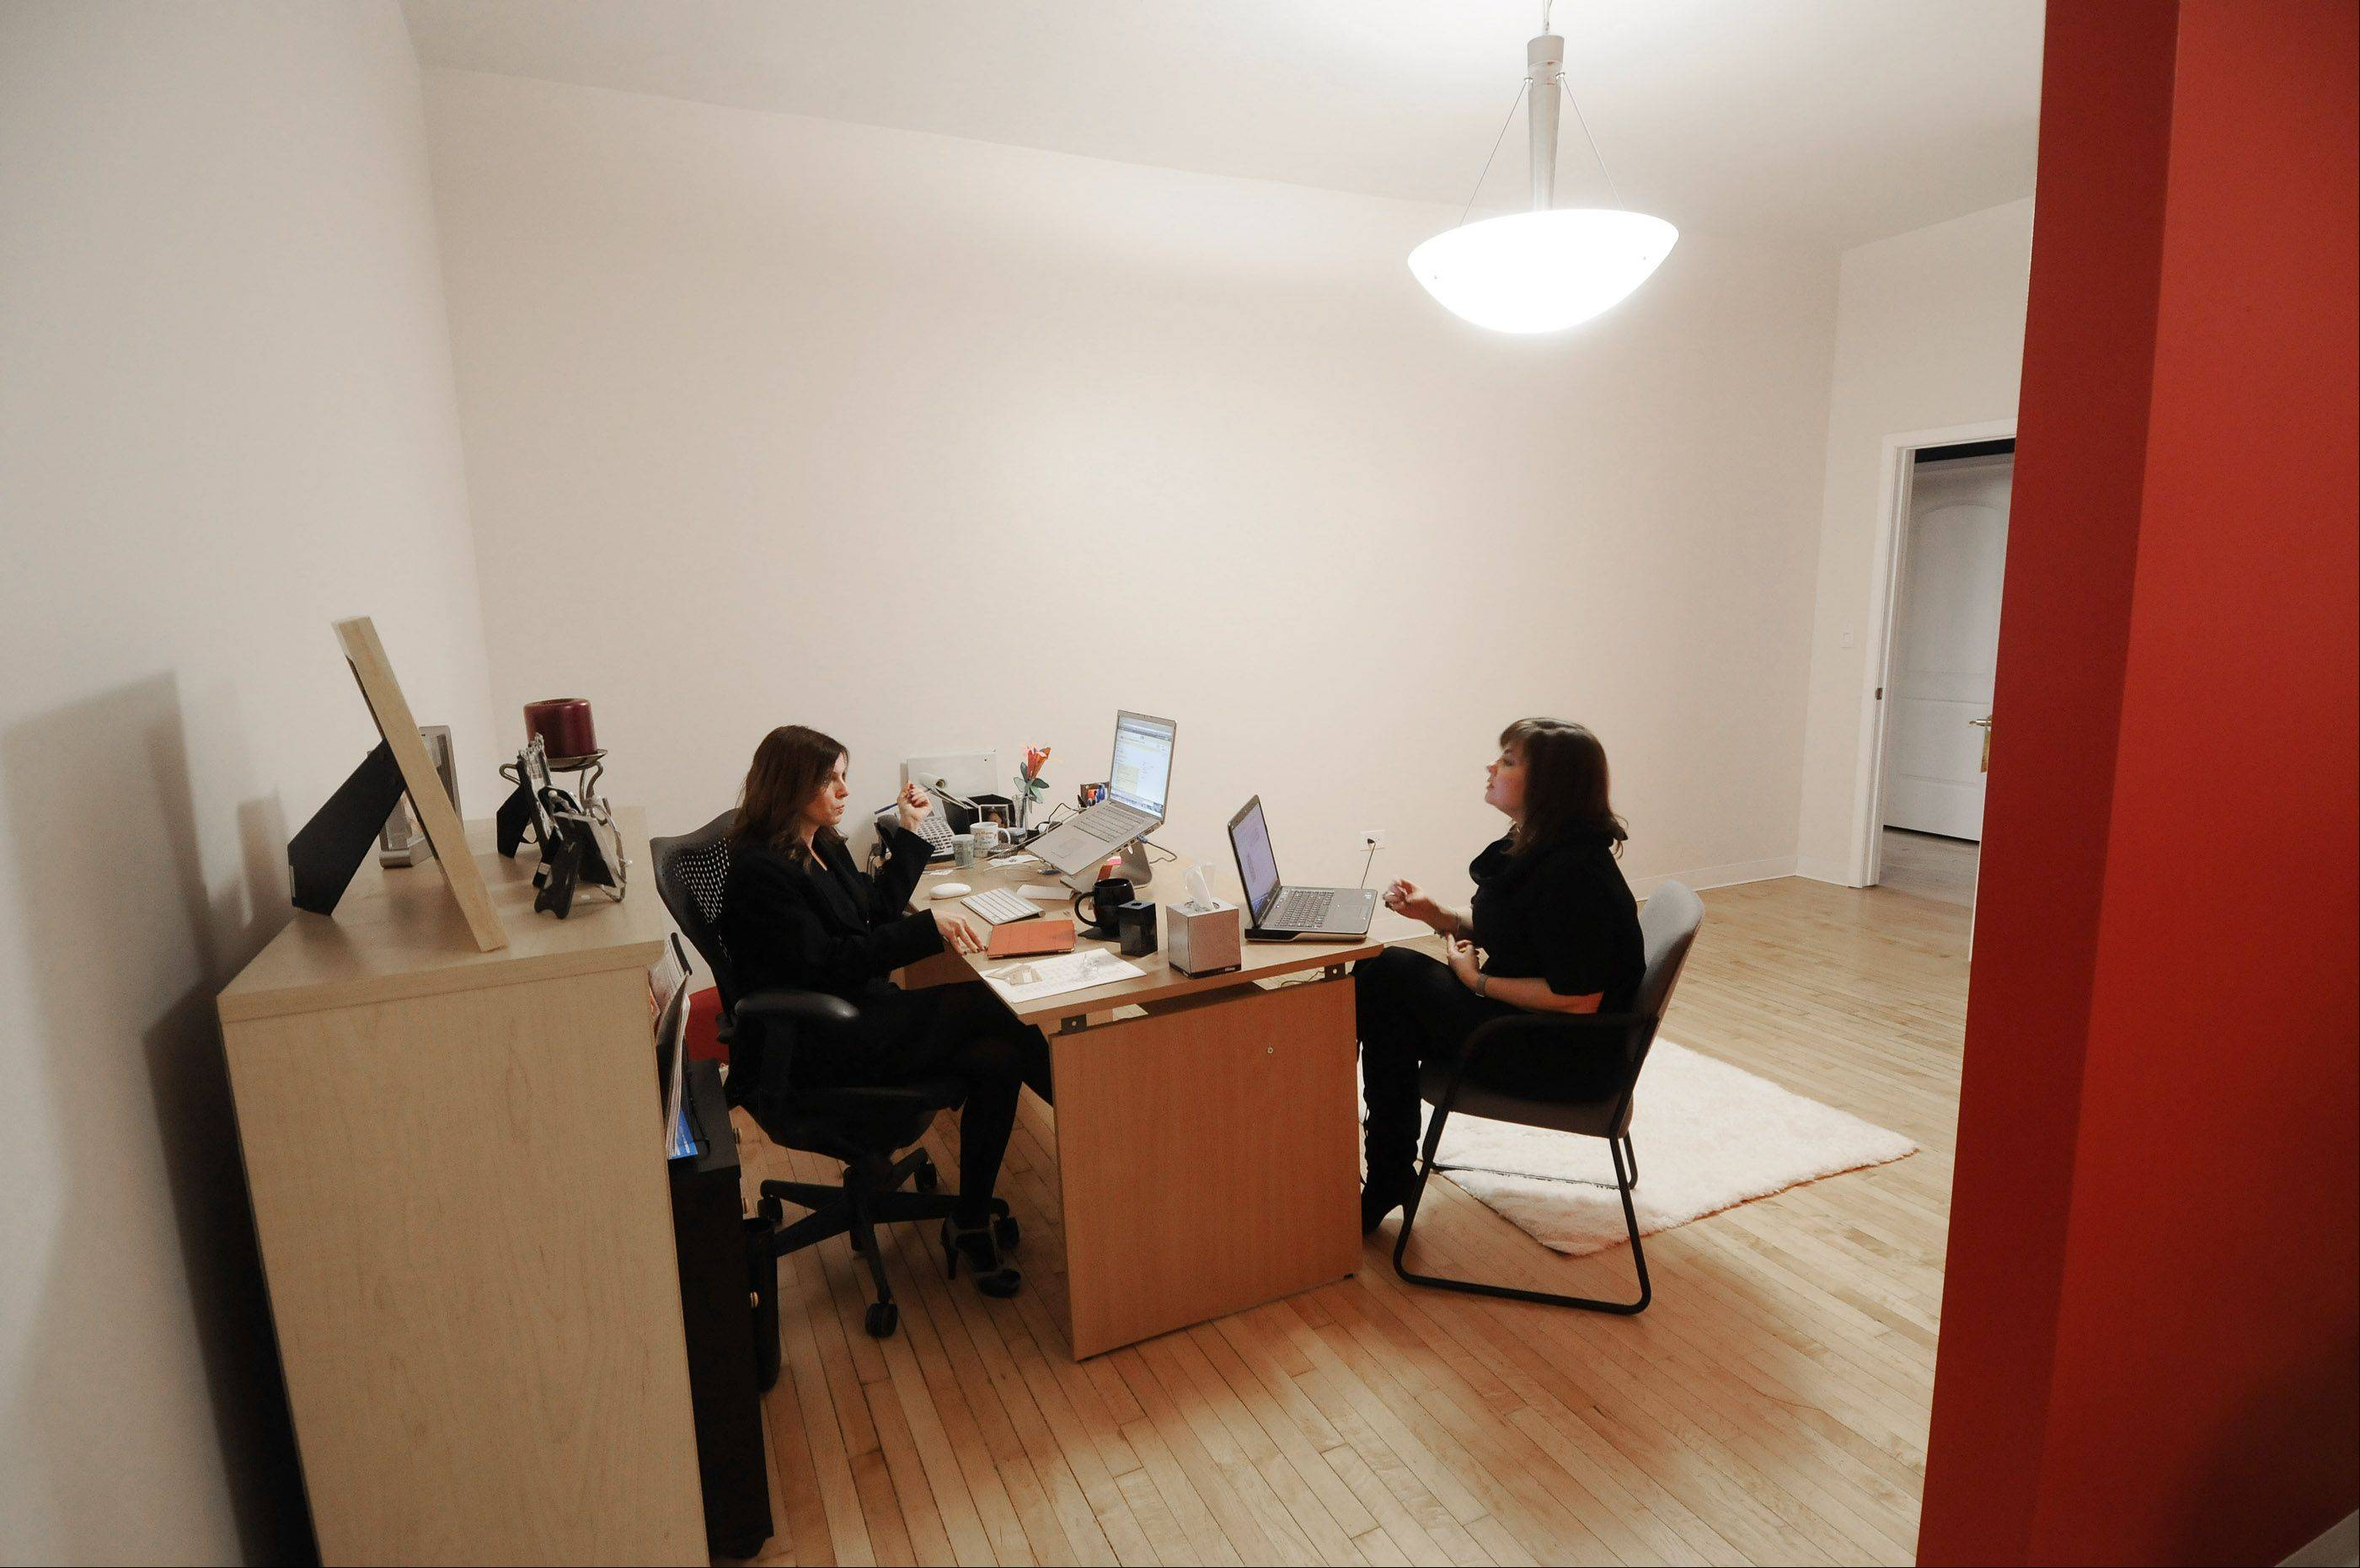 Kathy Steele and Julie Poulos meet in the new downtown Lombard offices of Desert Rose Design. The marketing and graphic design firm moved into 106 W. St. Charles Road in January, filling a space that had been vacant about three years.